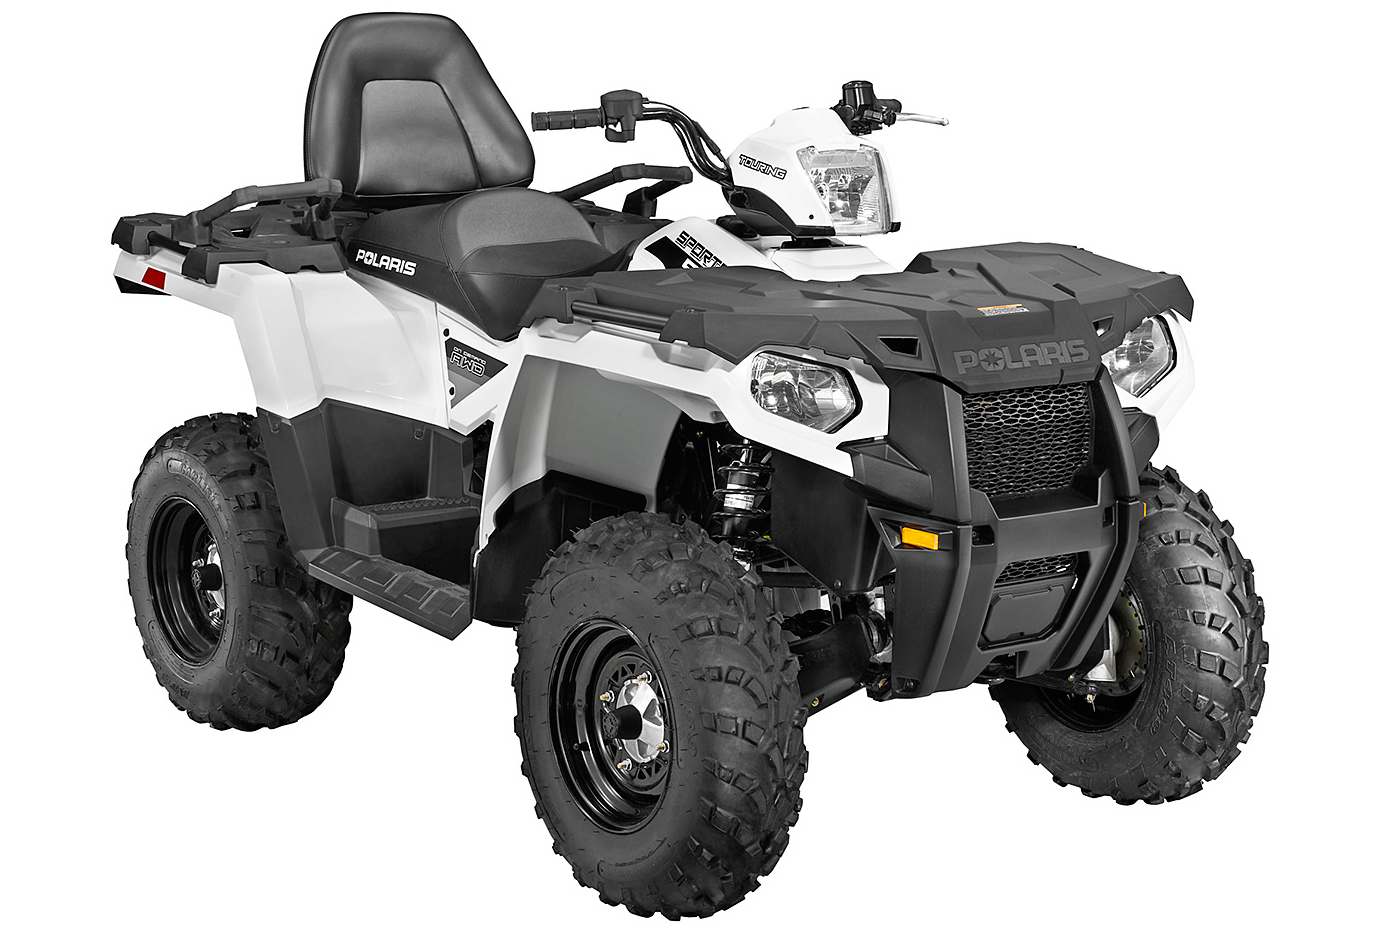 2014 polaris sportsman 570 first ride review gearopen. Black Bedroom Furniture Sets. Home Design Ideas